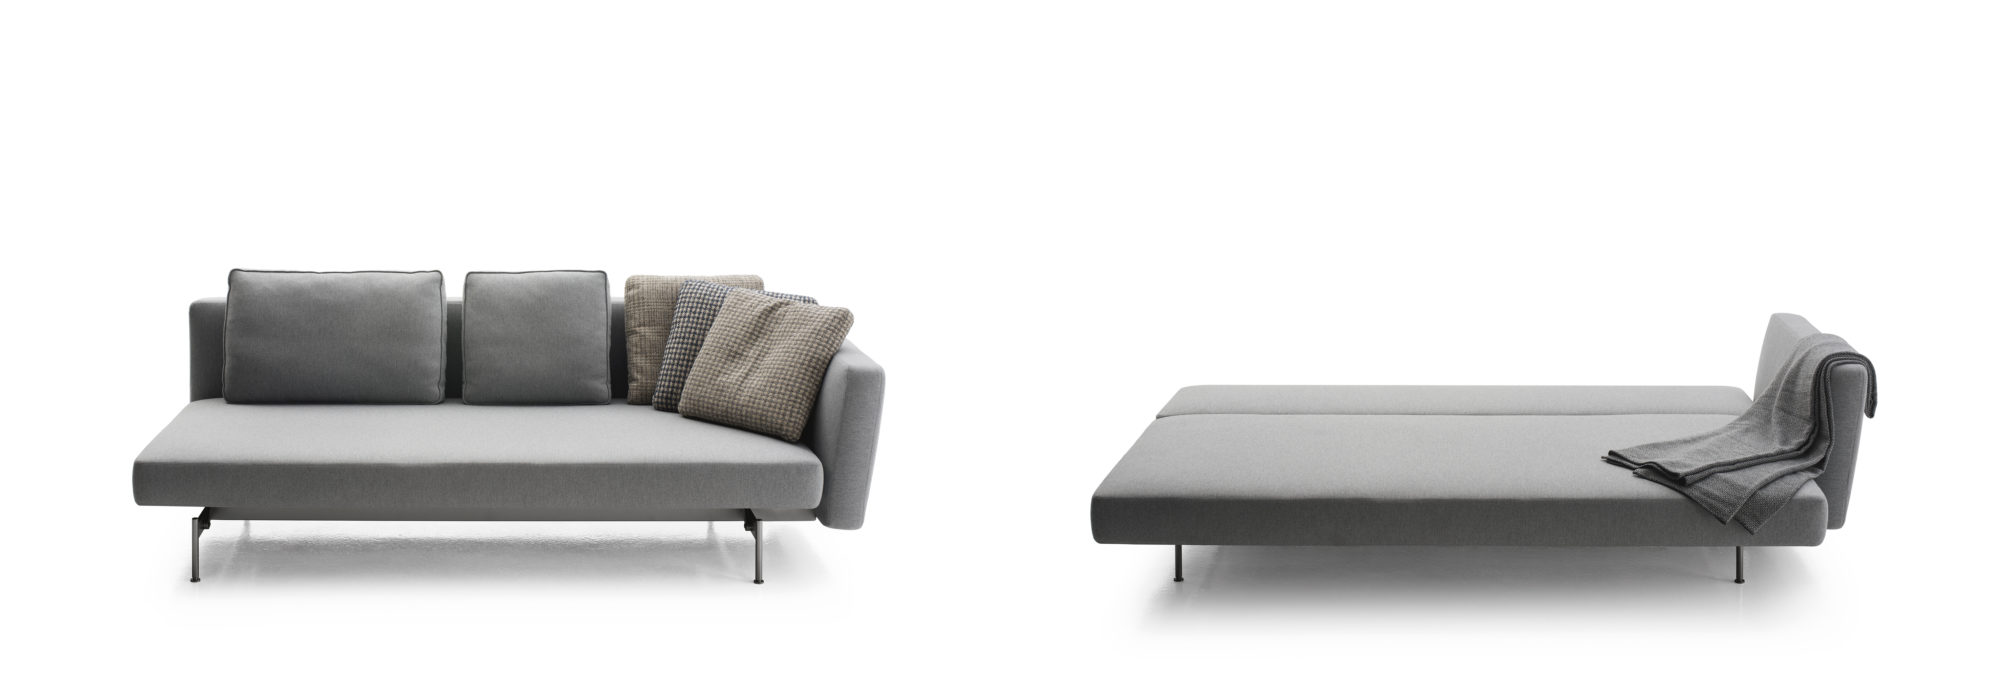 For Piero Lissoniu0027s Inaugural Collaboration With Bu0026B Italia, He Designed  The Saké Sofa Bed With Equally Comfortable Seating And Sleeping In Mind.